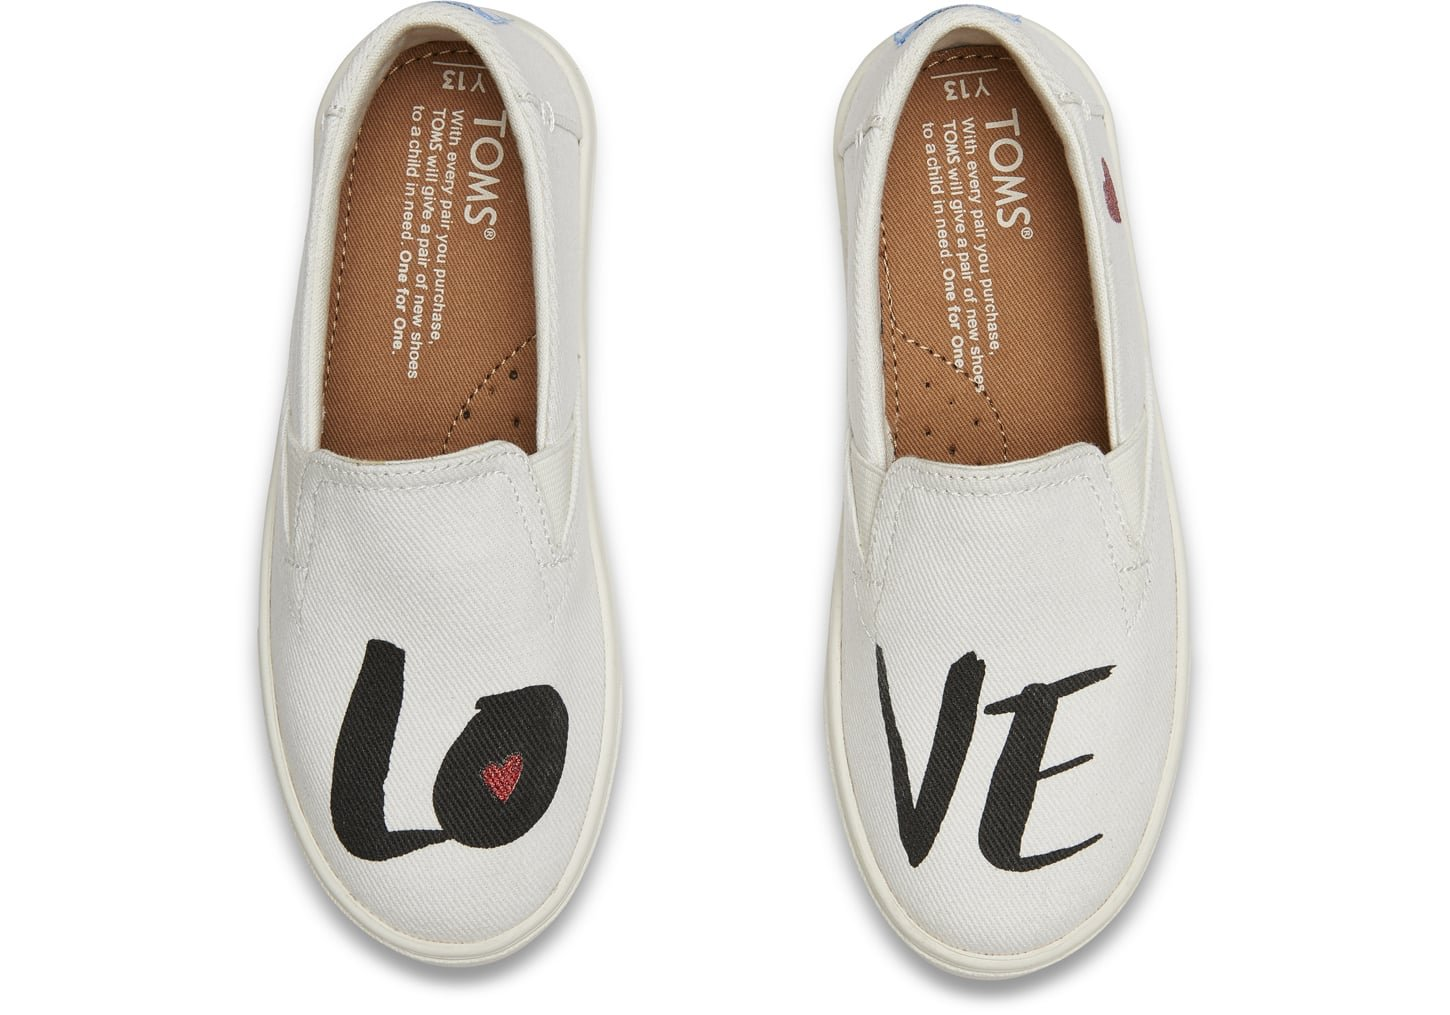 TOMS Youth Luca Slip Ons White Denim Love 10011482 Youth Size 5.5 by TOMS Kids (Image #3)